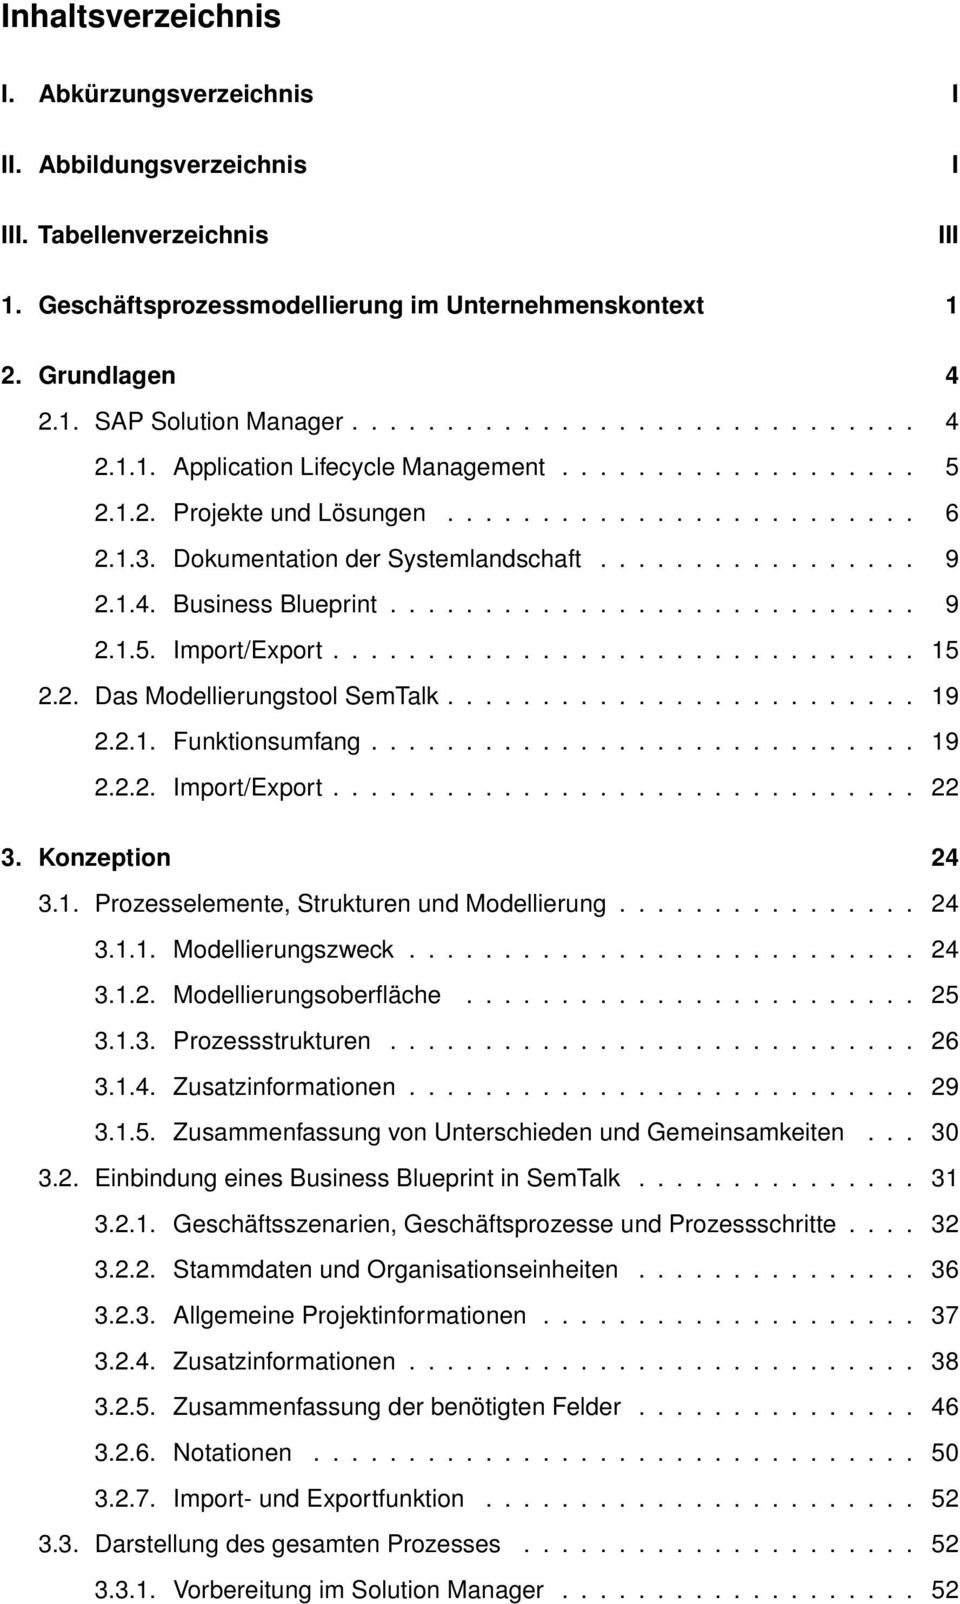 1.4. Business Blueprint............................ 9 2.1.5. Import/Export............................... 15 2.2. Das Modellierungstool SemTalk......................... 19 2.2.1. Funktionsumfang.